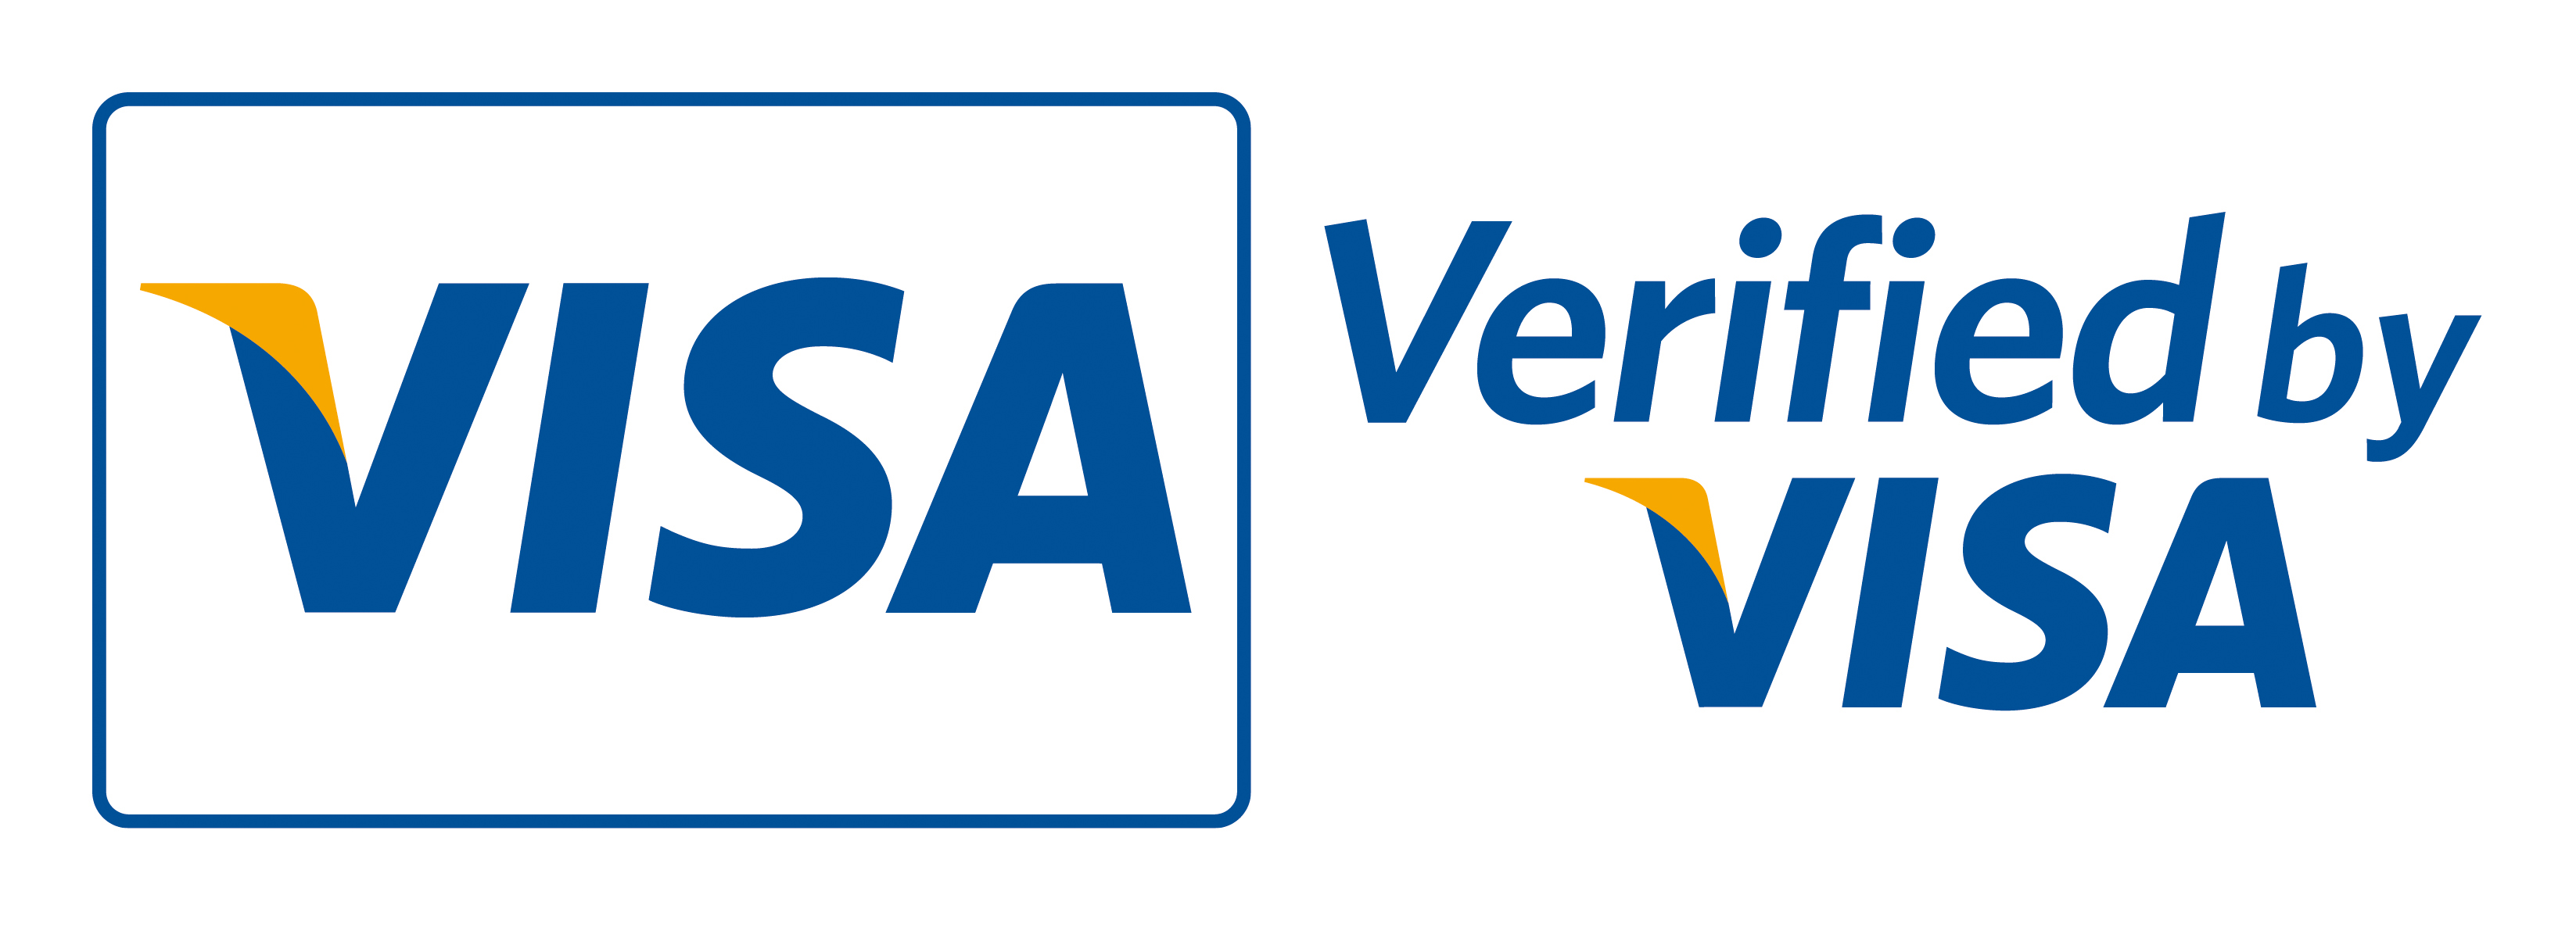 Visa Card verified